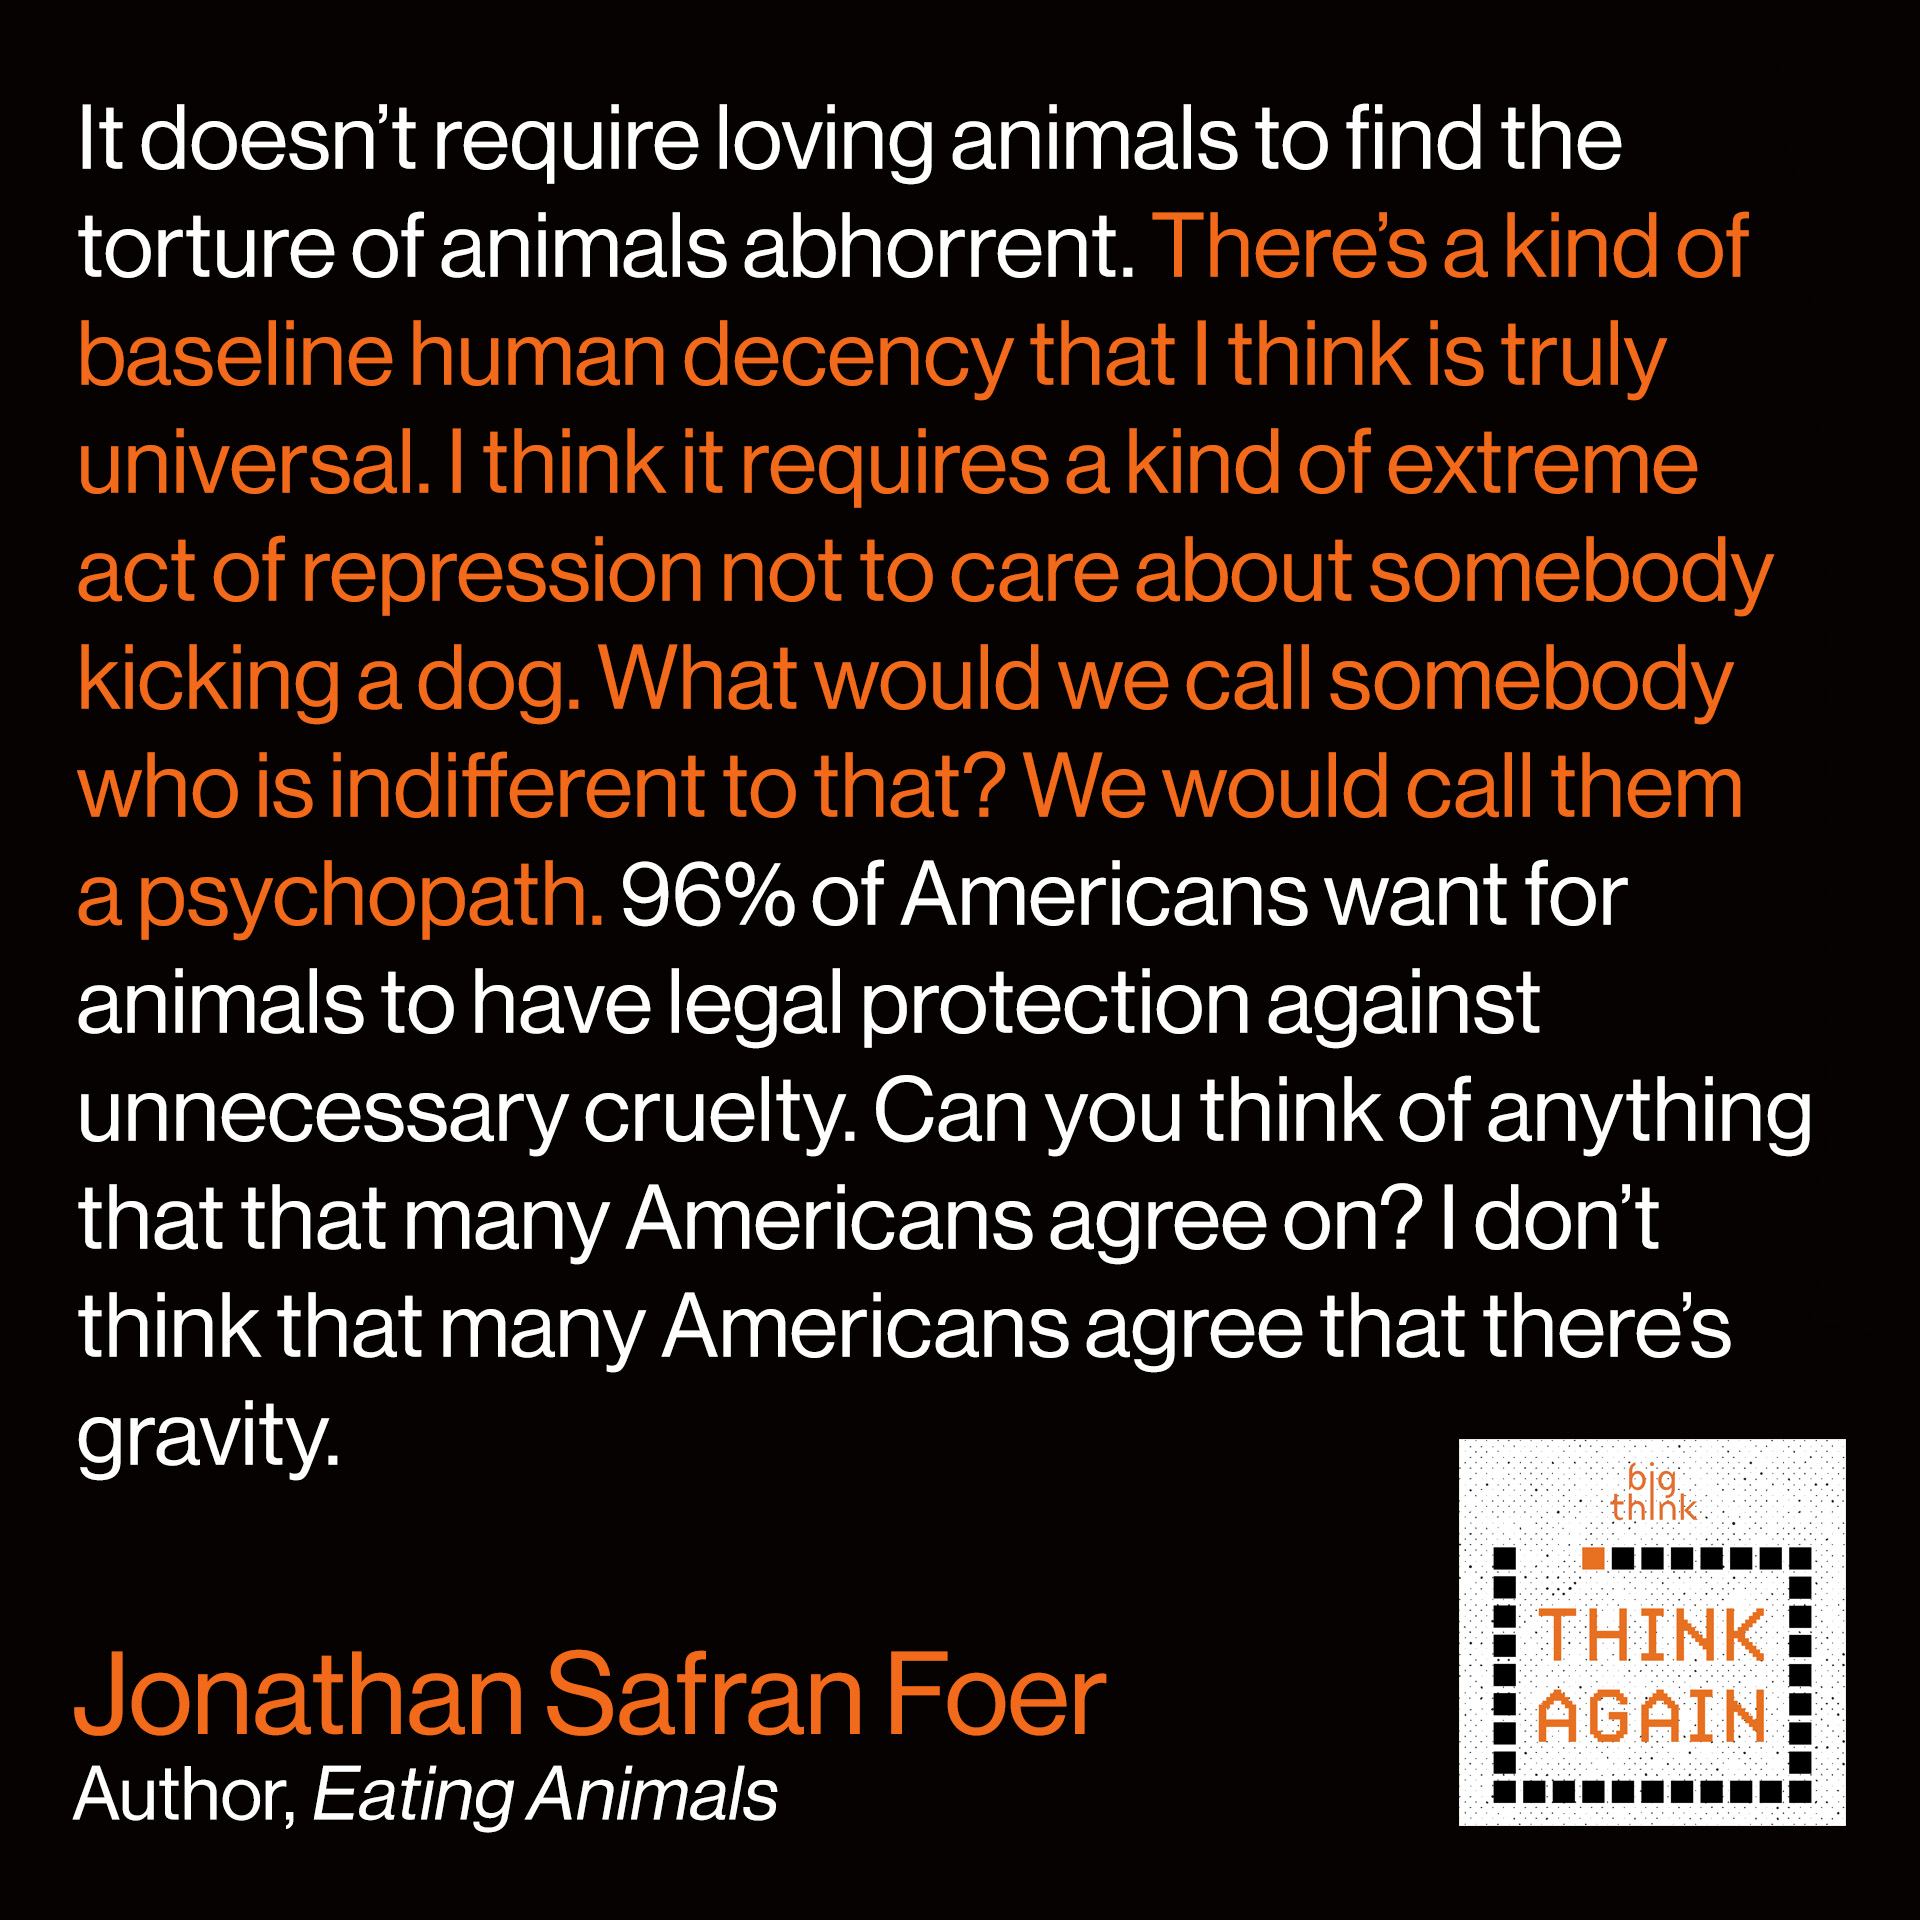 Jonathan Safran Foer Quote: It doesn't require loving animals to find the torture of animals abhorrent. There's a kind of baseline human decency that I think is truly universal. I think it requires a kind of extreme act of repression not to care about somebody kicking a dog. What would we call somebody who is indifferent to that? We would call them a psychopath. 96% of Americans want for animals to have legal protection against unnecessary cruelty. Can you think of anything that that many Americans agree on? I don't think that many Americans agree that there's gravity.